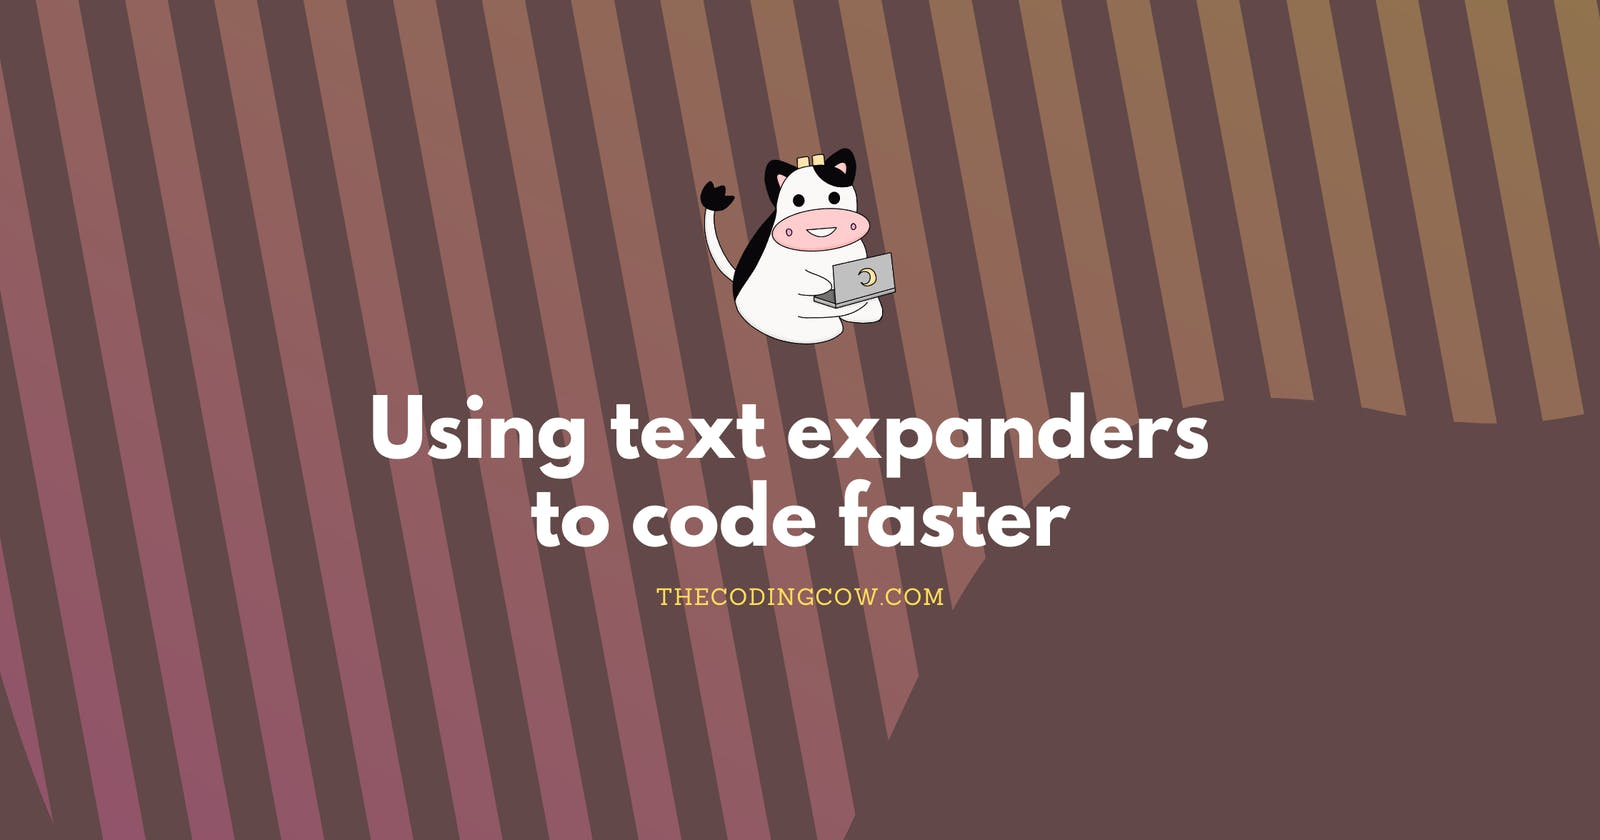 Using text expanders to code faster